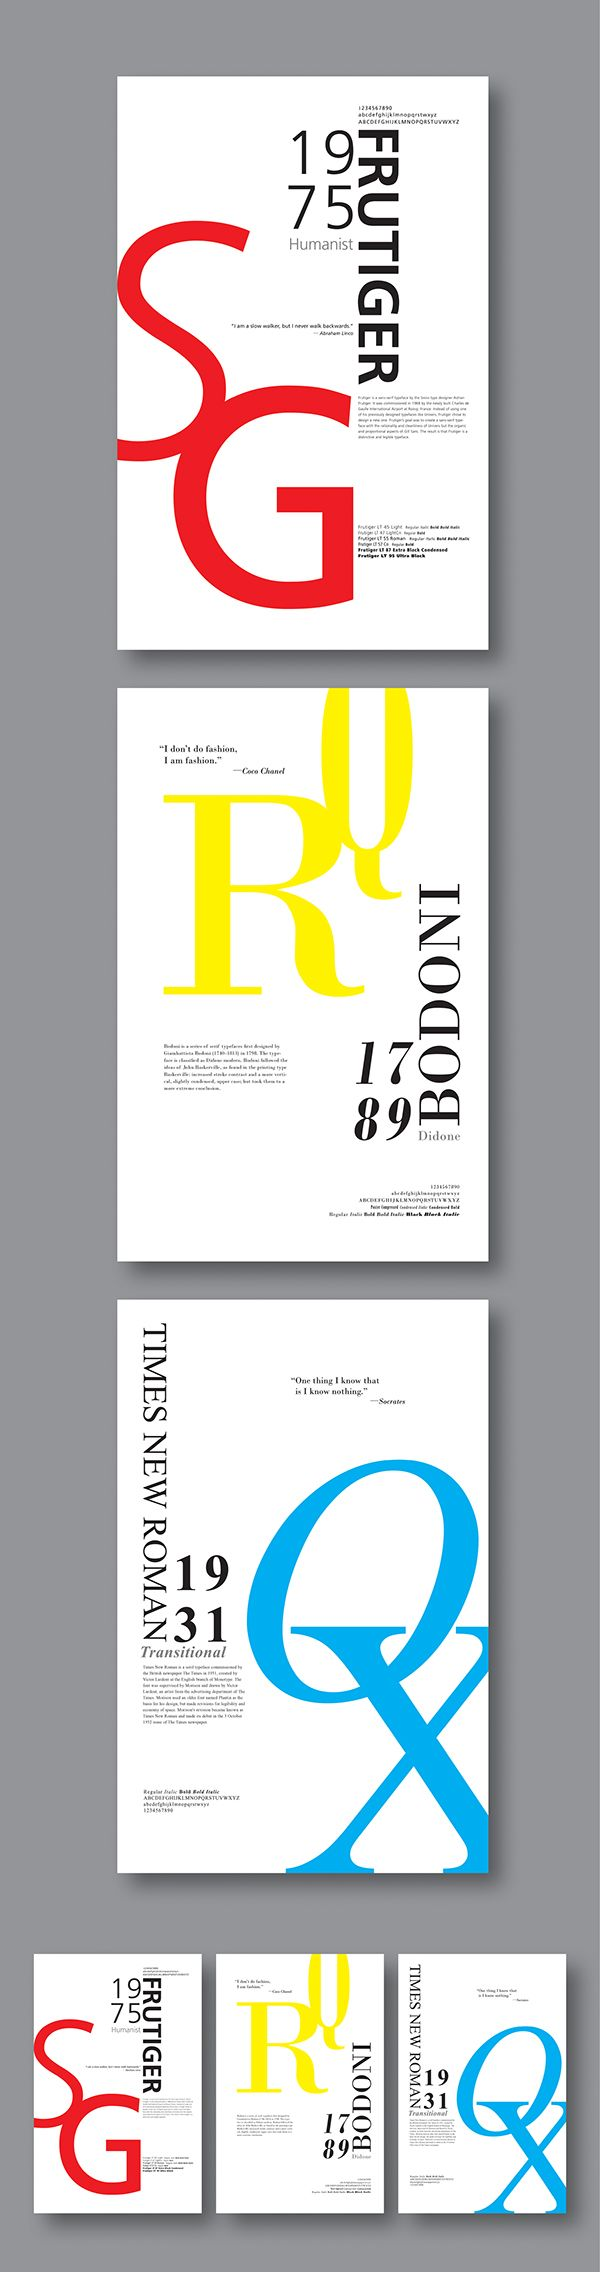 Poster design editor - Typeface Posters Frutiger Bodoni And Times Roman On Behance